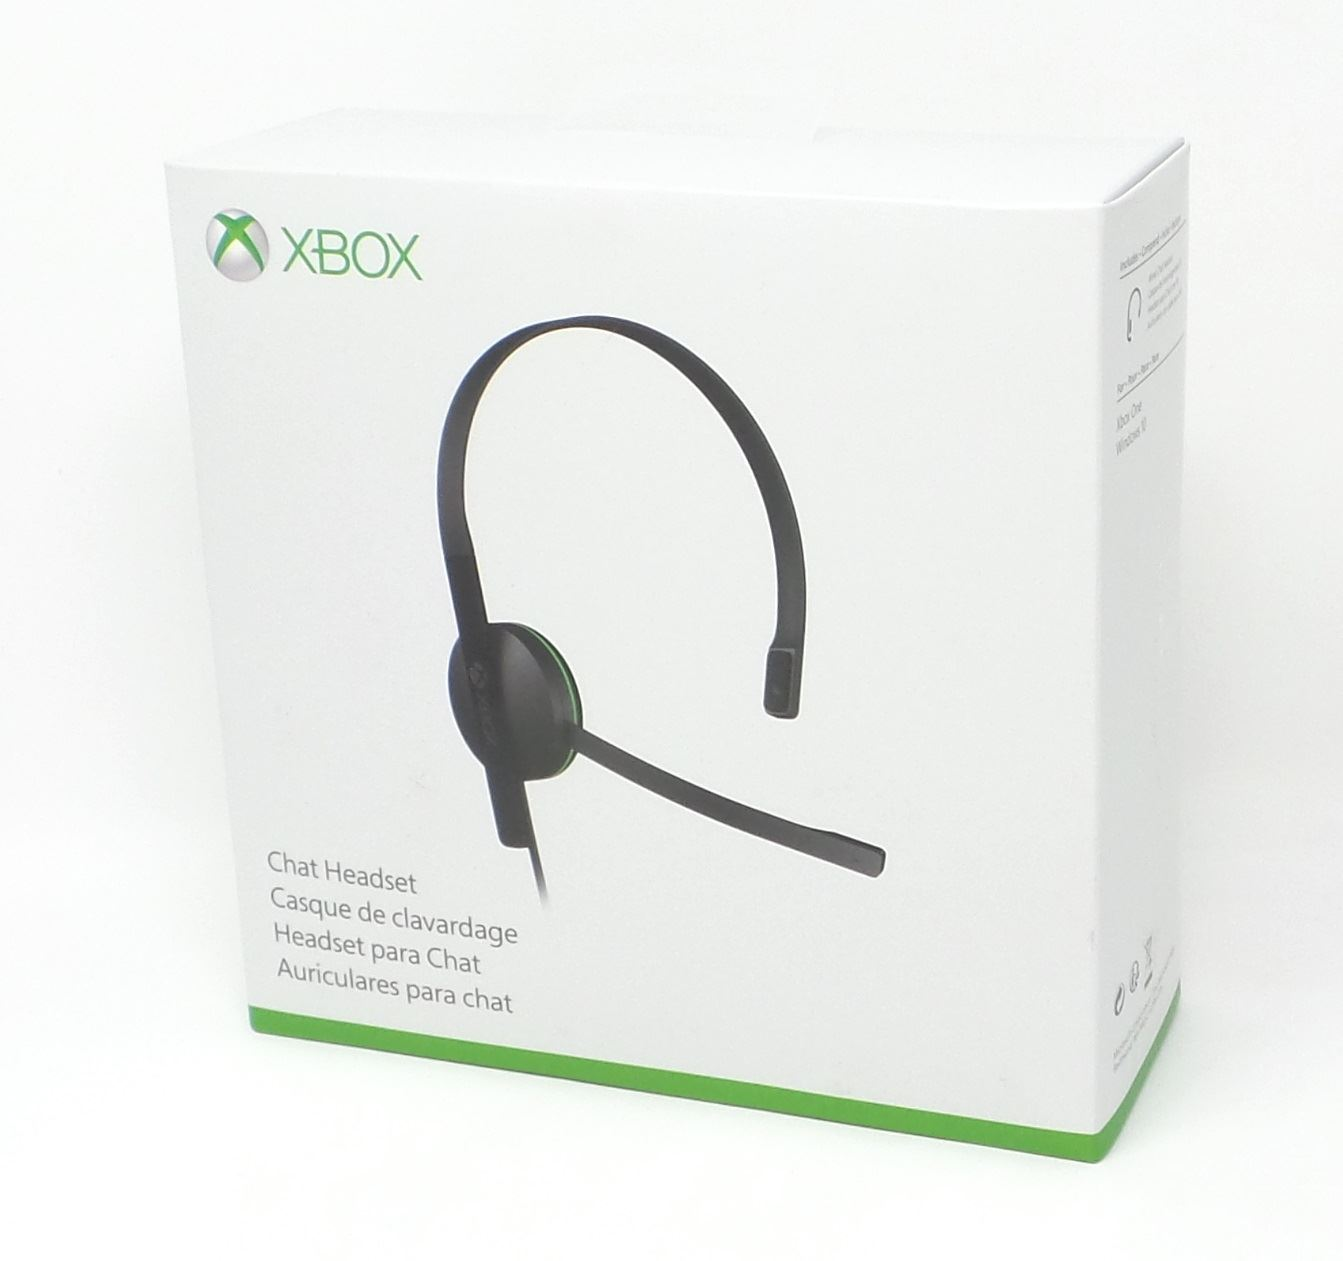 Xbox One Chat Headset Wiring Diagram Trusted Diagrams Usb Controller Microsoft Wired Mono Volume Control Mic S5v Cable Schematic